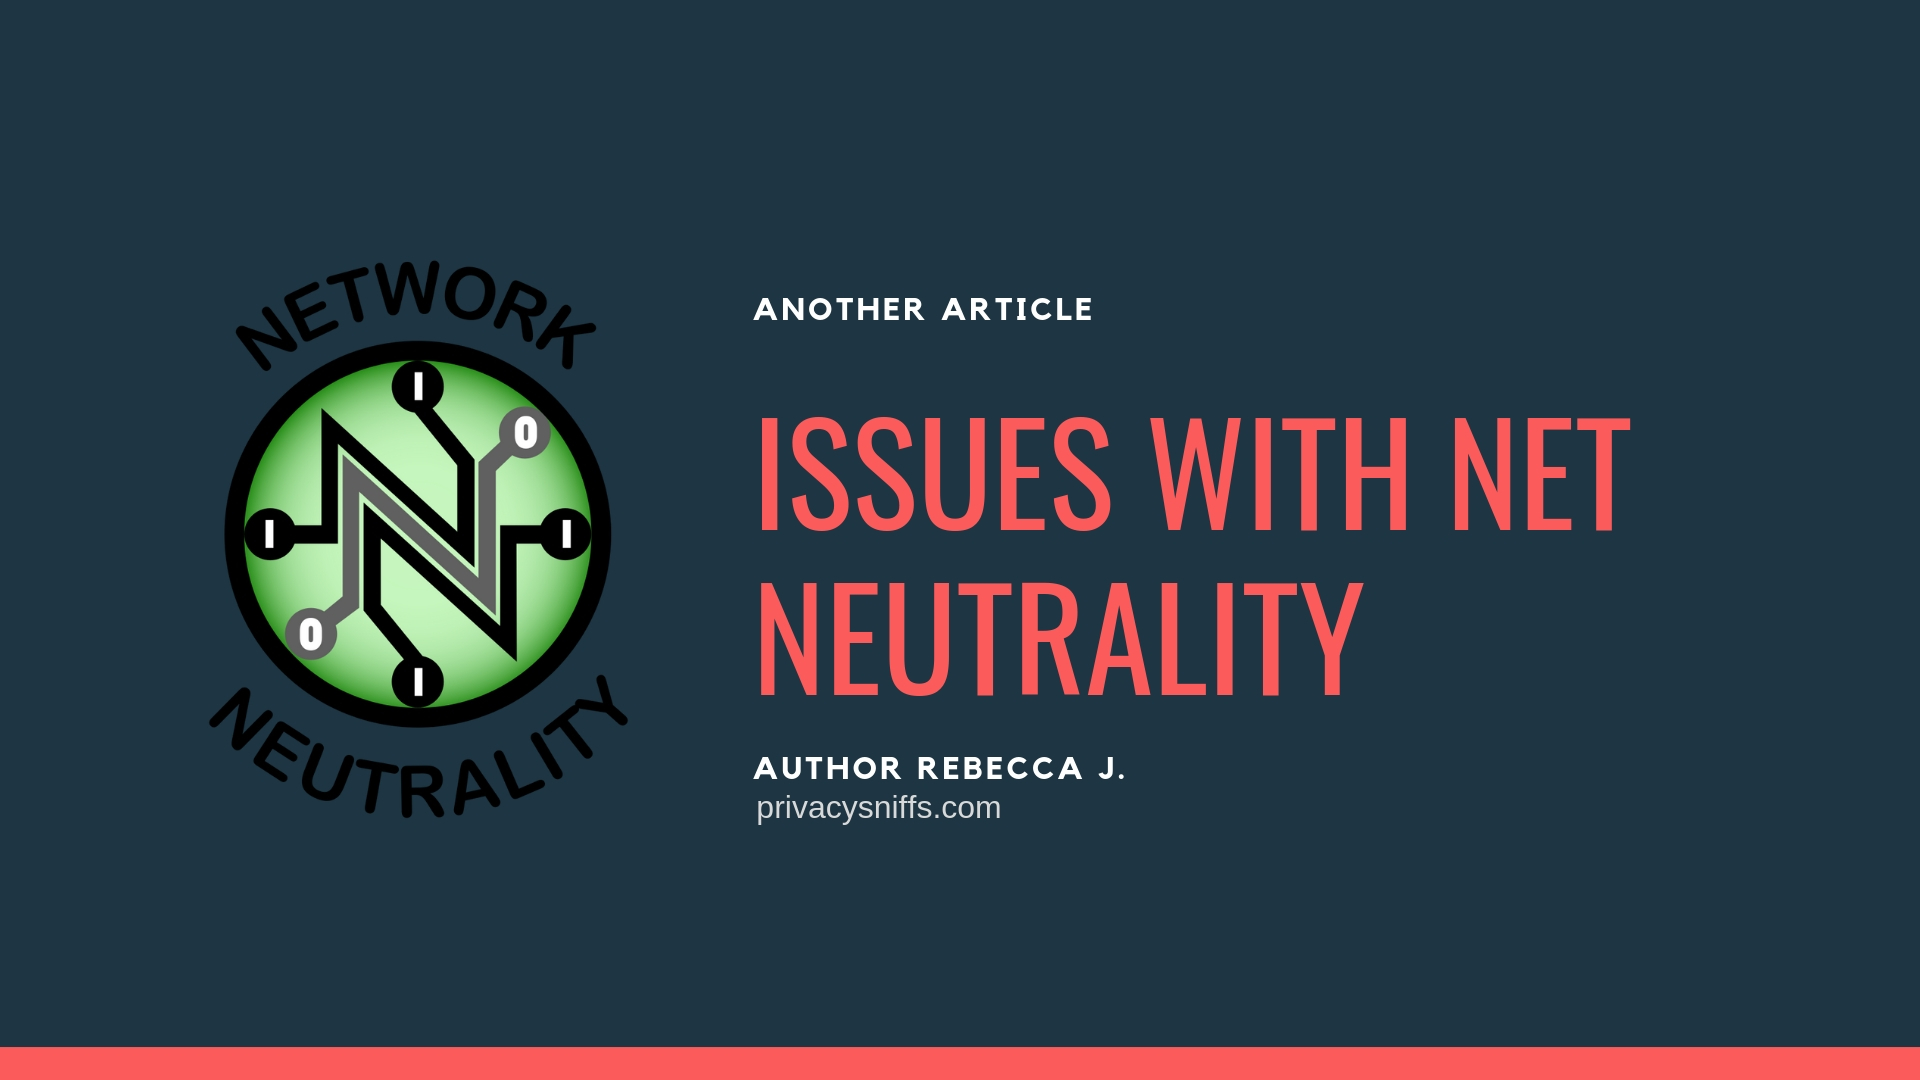 Issues with Net Neutrality